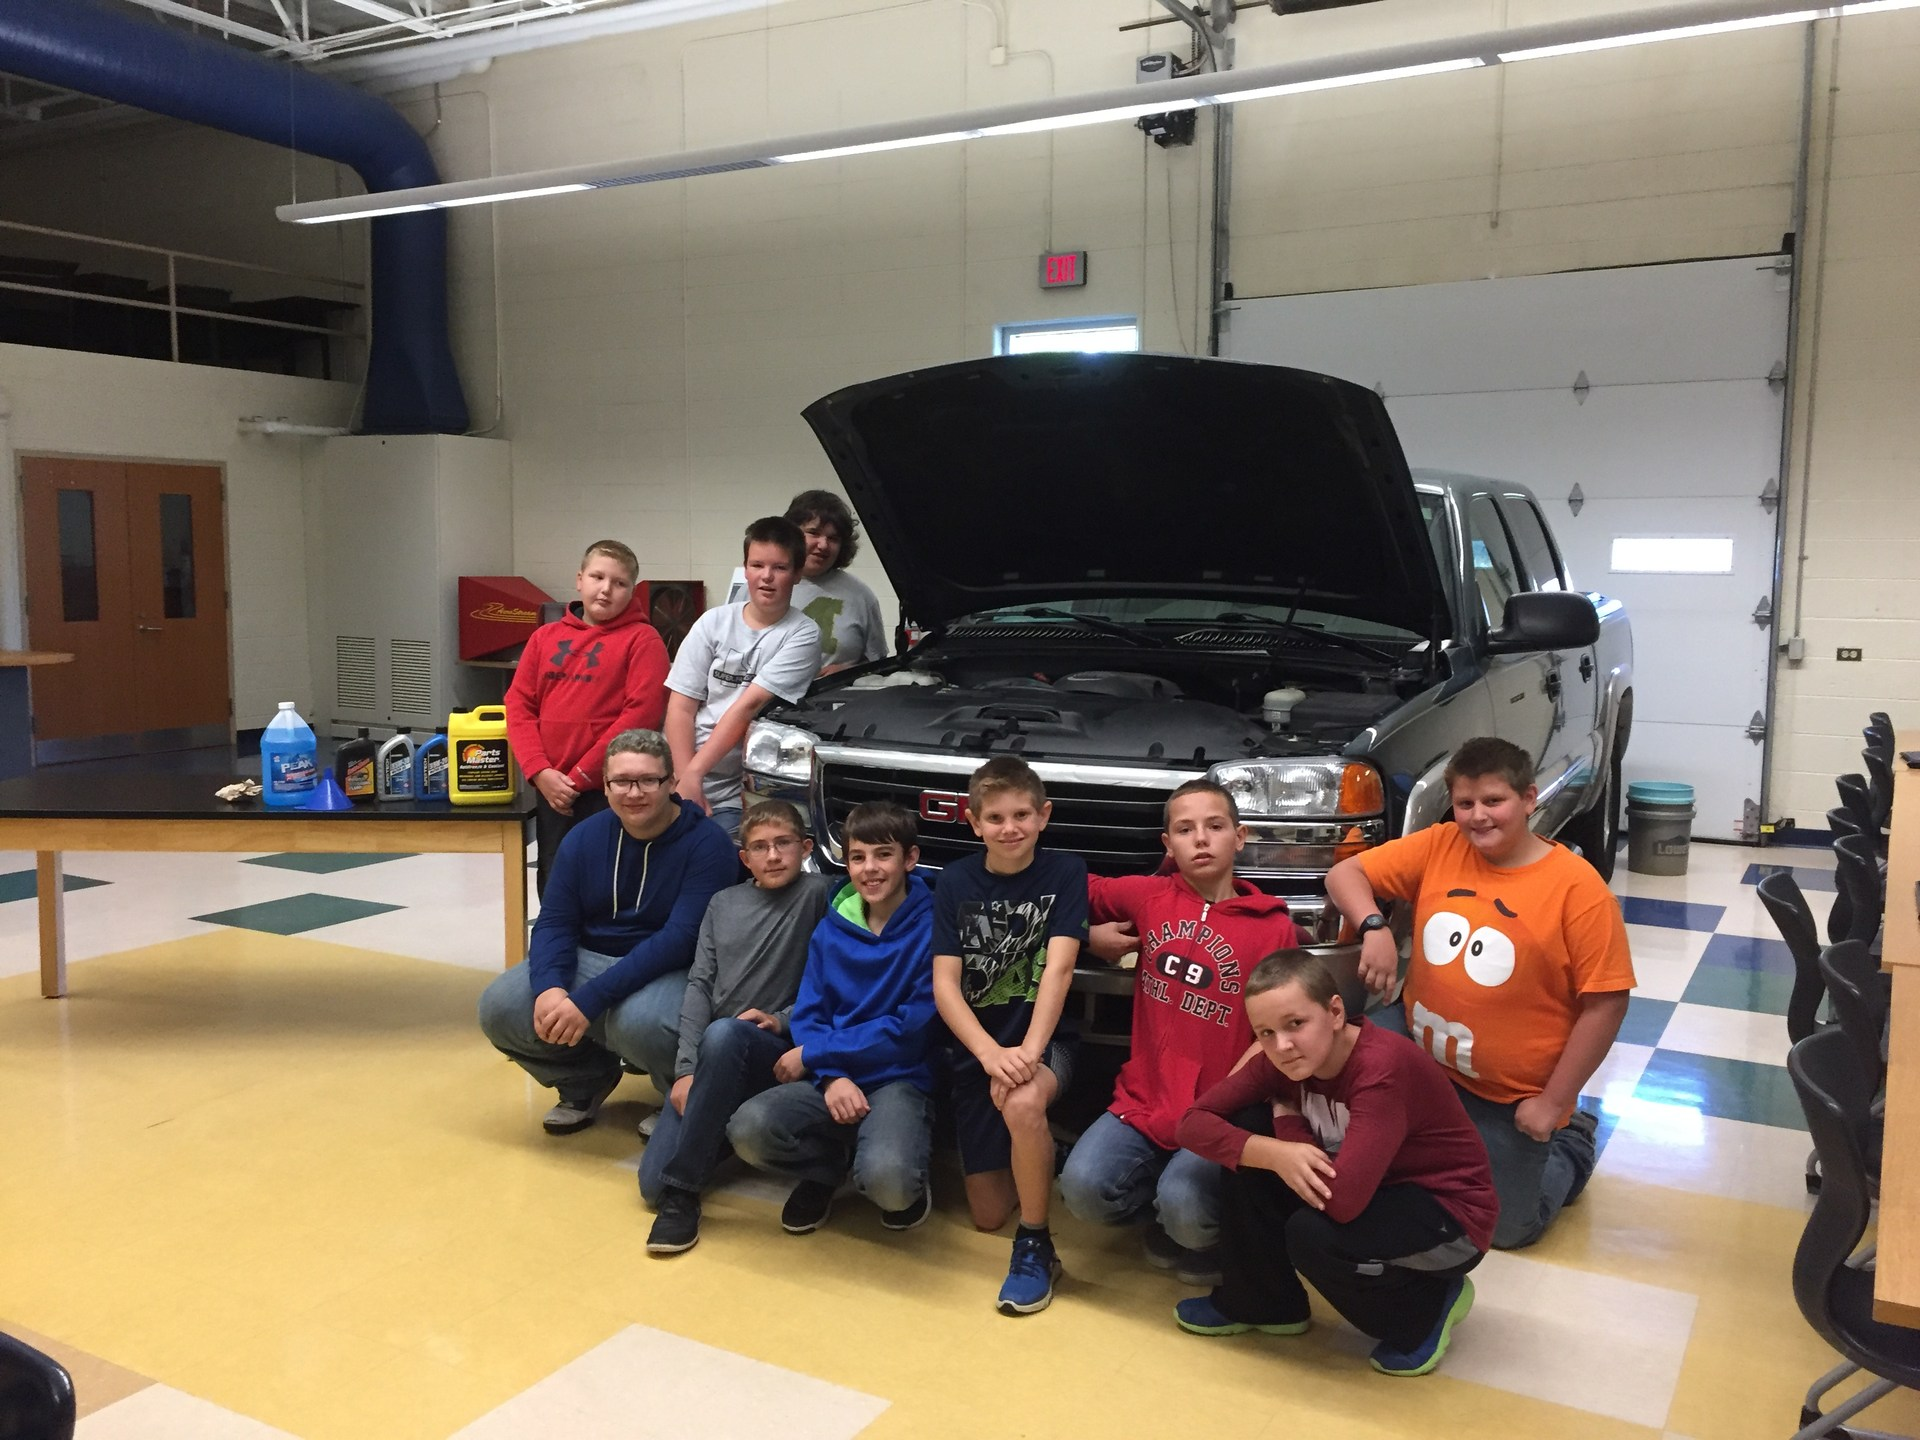 Students pose by a car that they used to learn how to do an oil change.